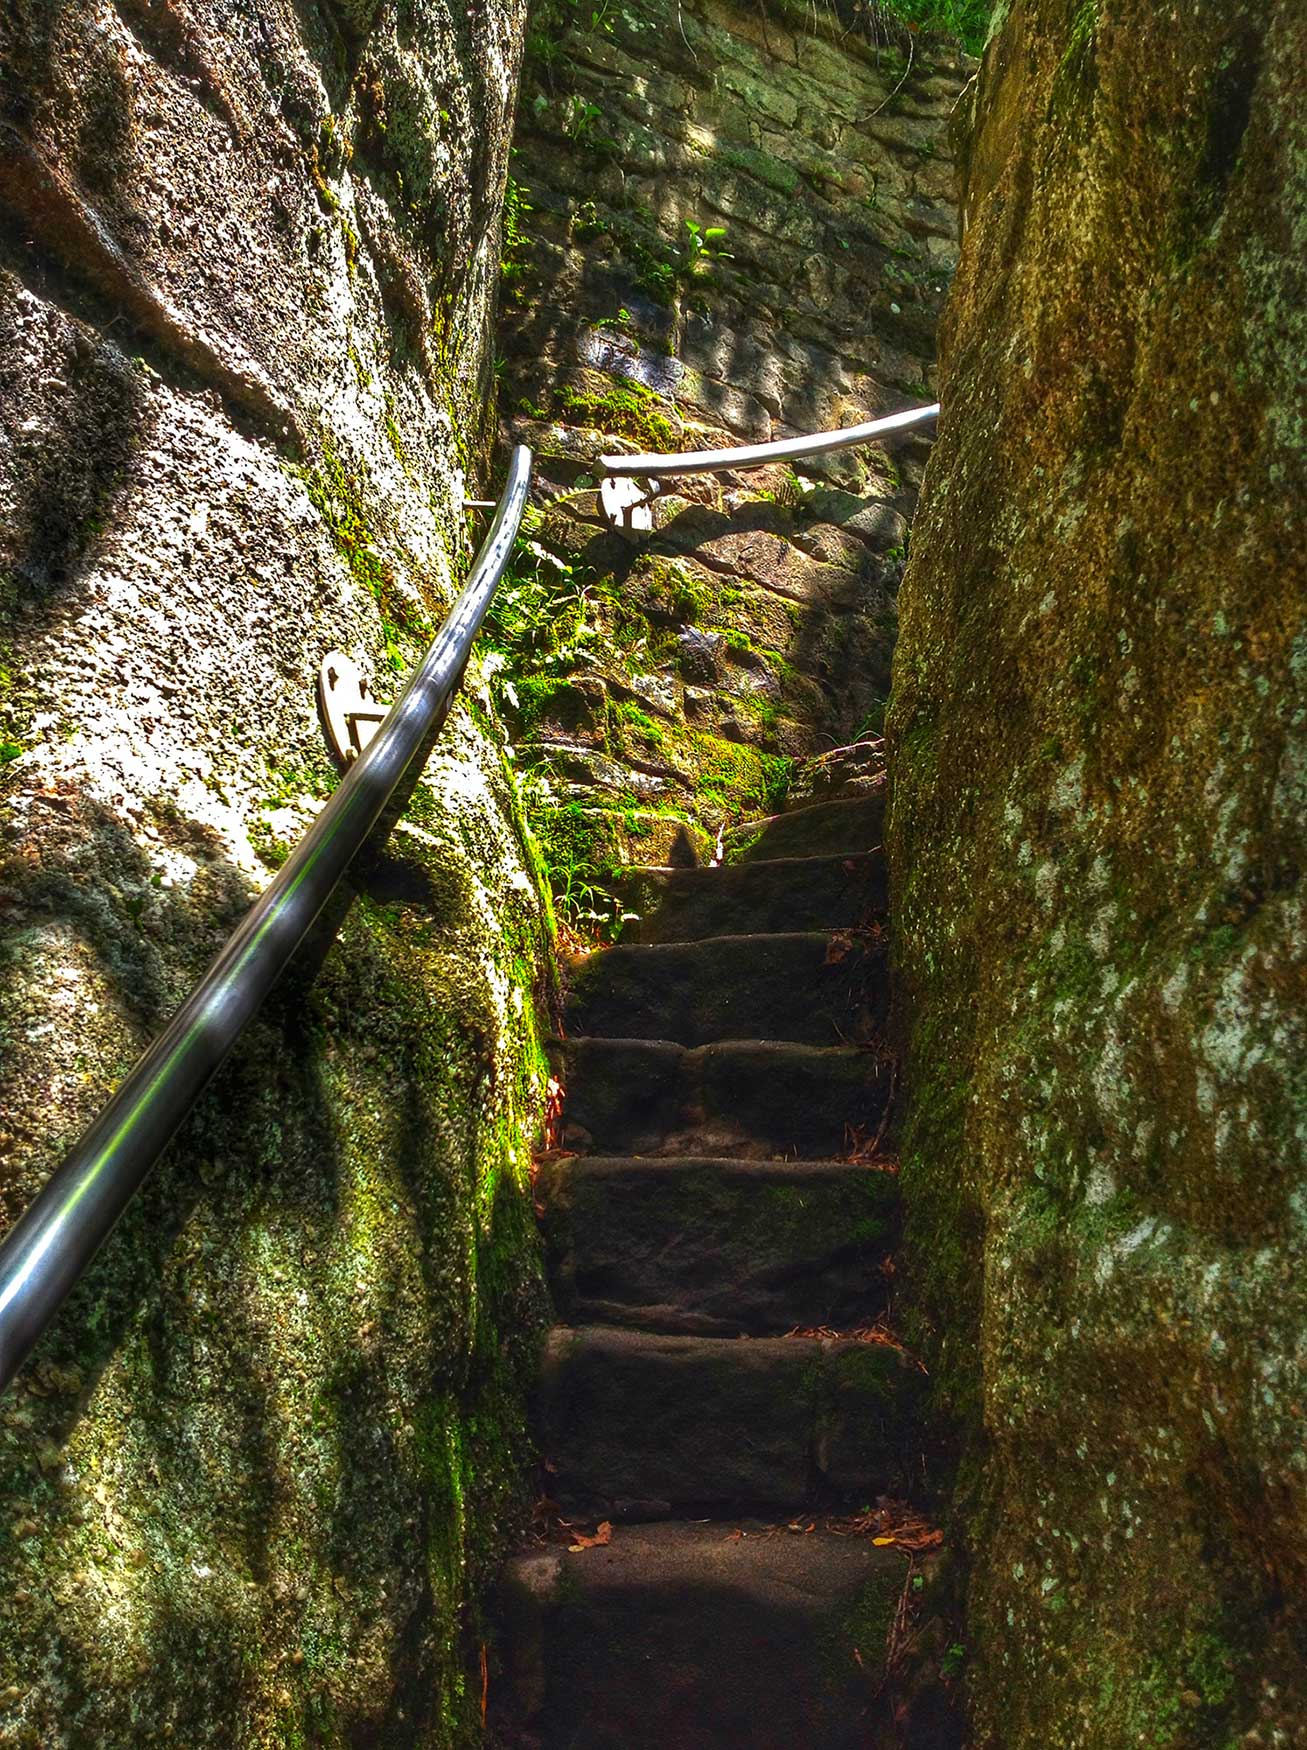 Stairs at Rimrock Overlook leading you up through the large boulders.